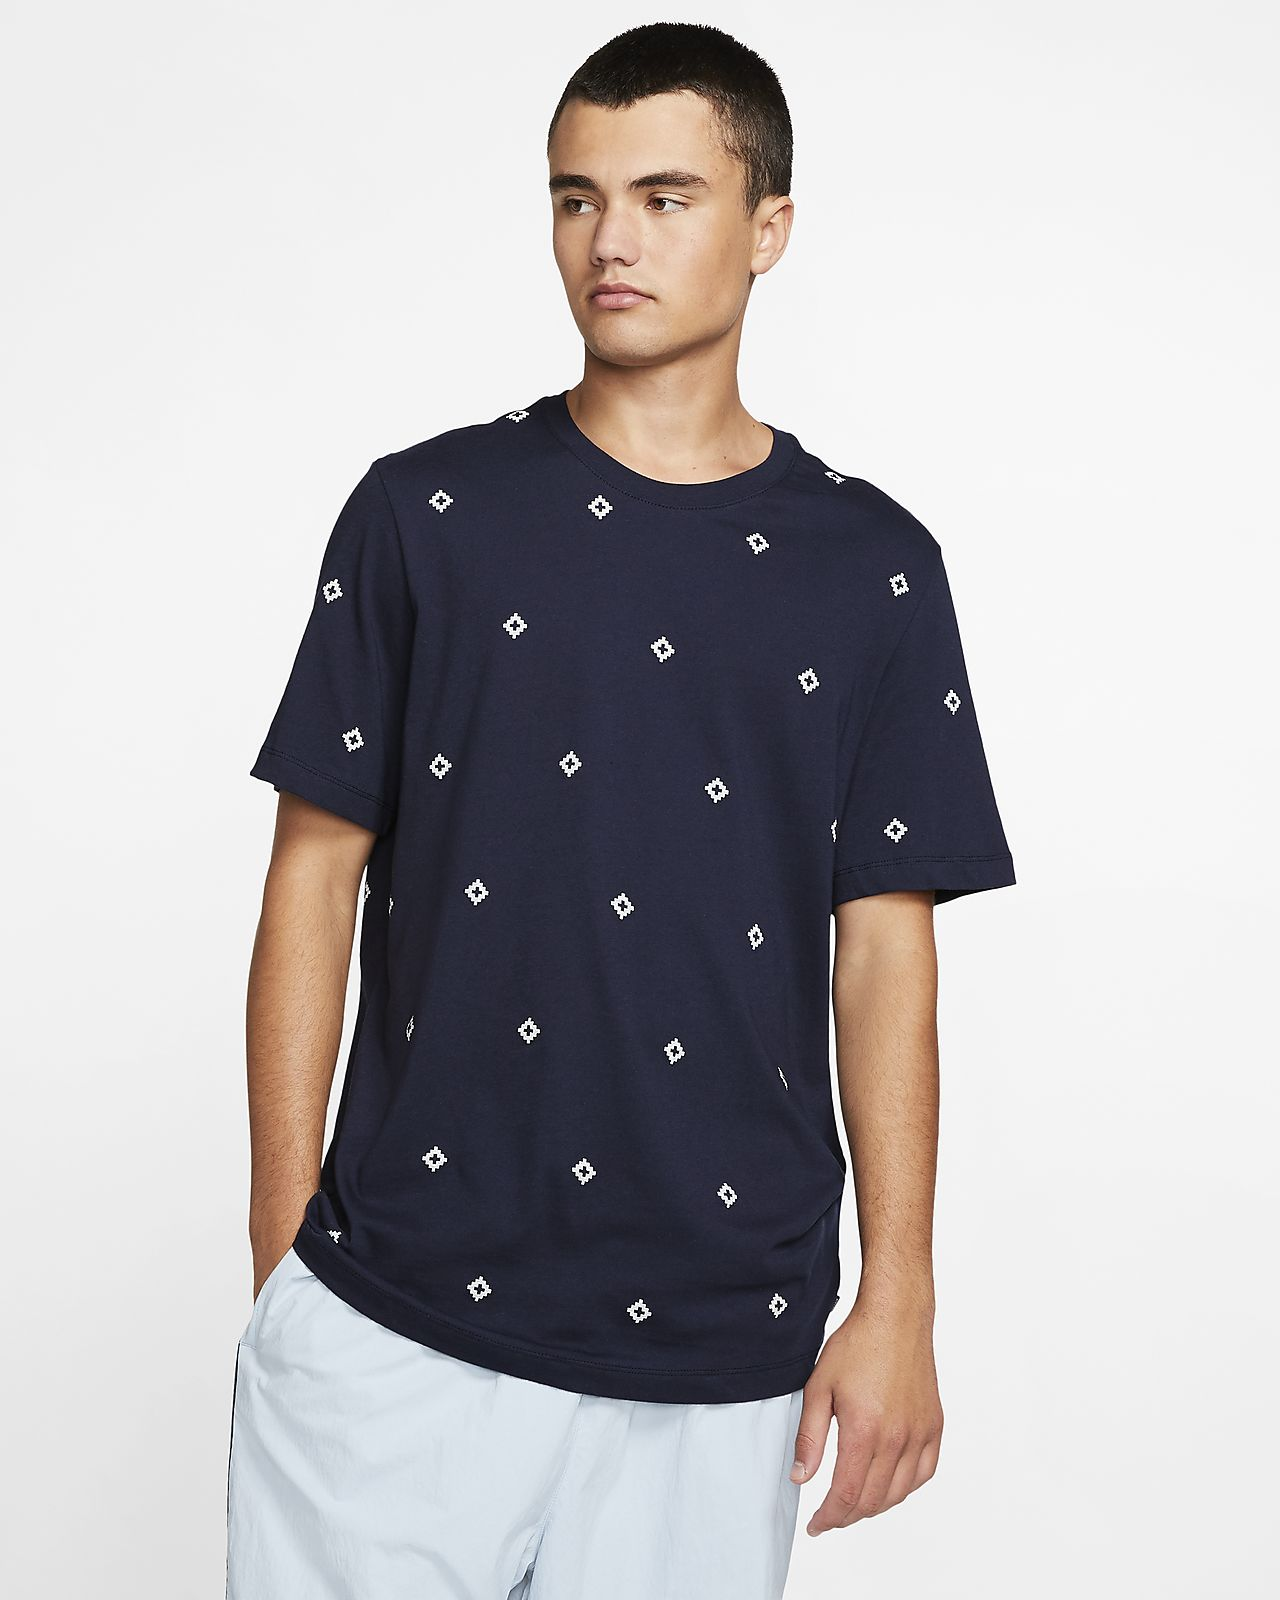 Nike SB Men's Printed Skate T-Shirt